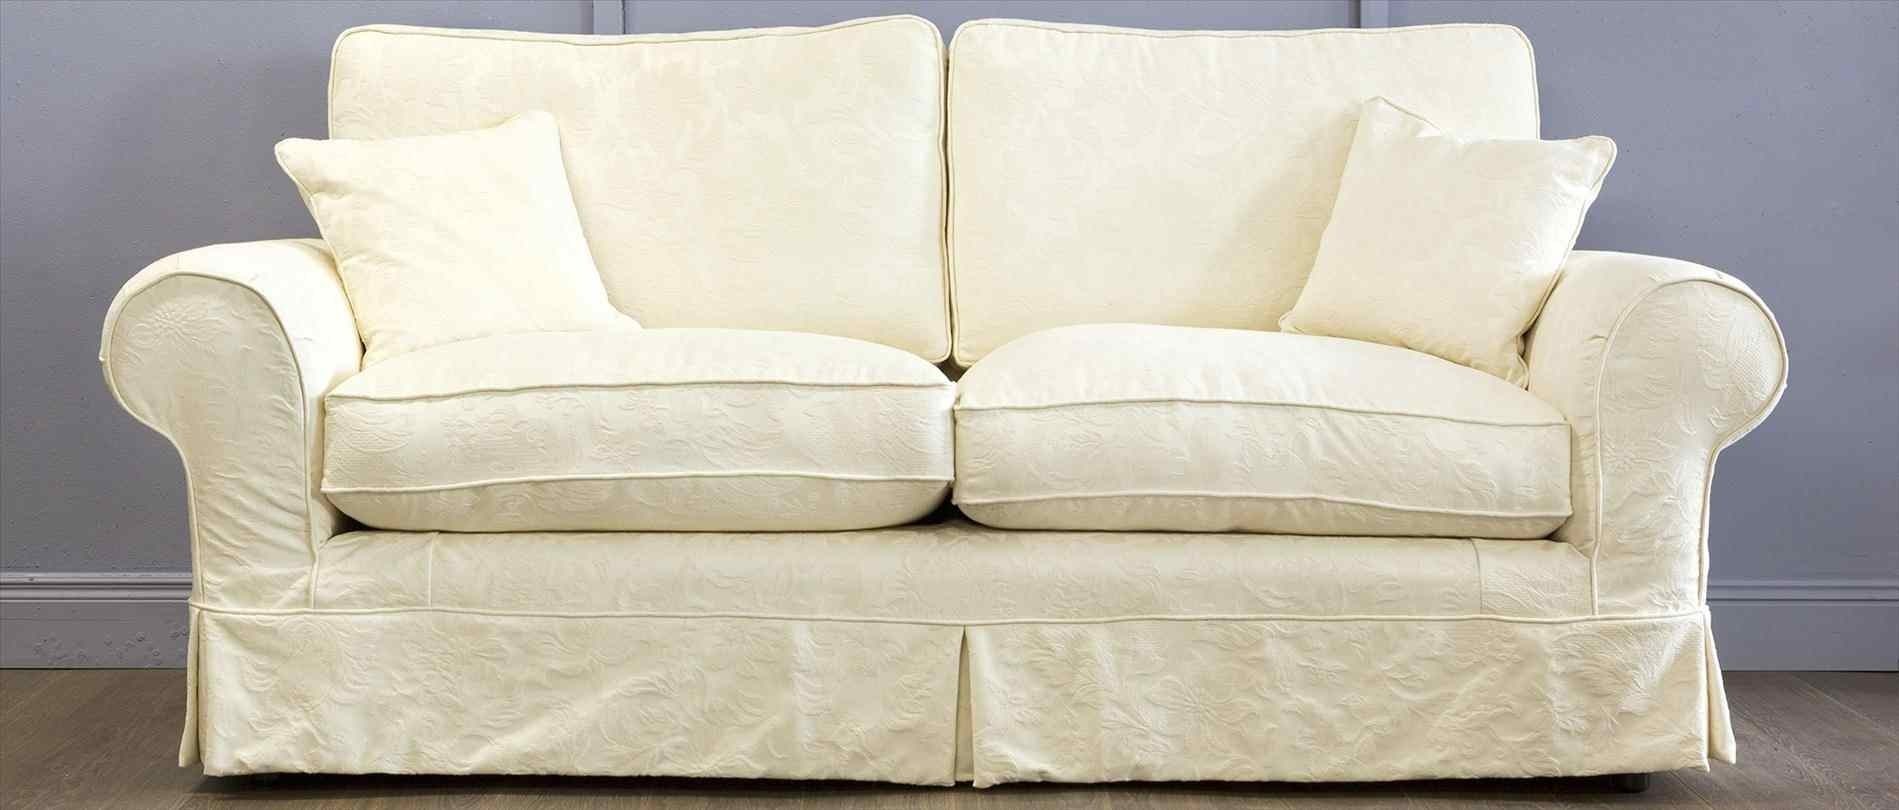 Sofa : Washable Covers Contemporary Fabric Removable Cover Couch Throughout Sofas With Washable Covers (View 3 of 10)